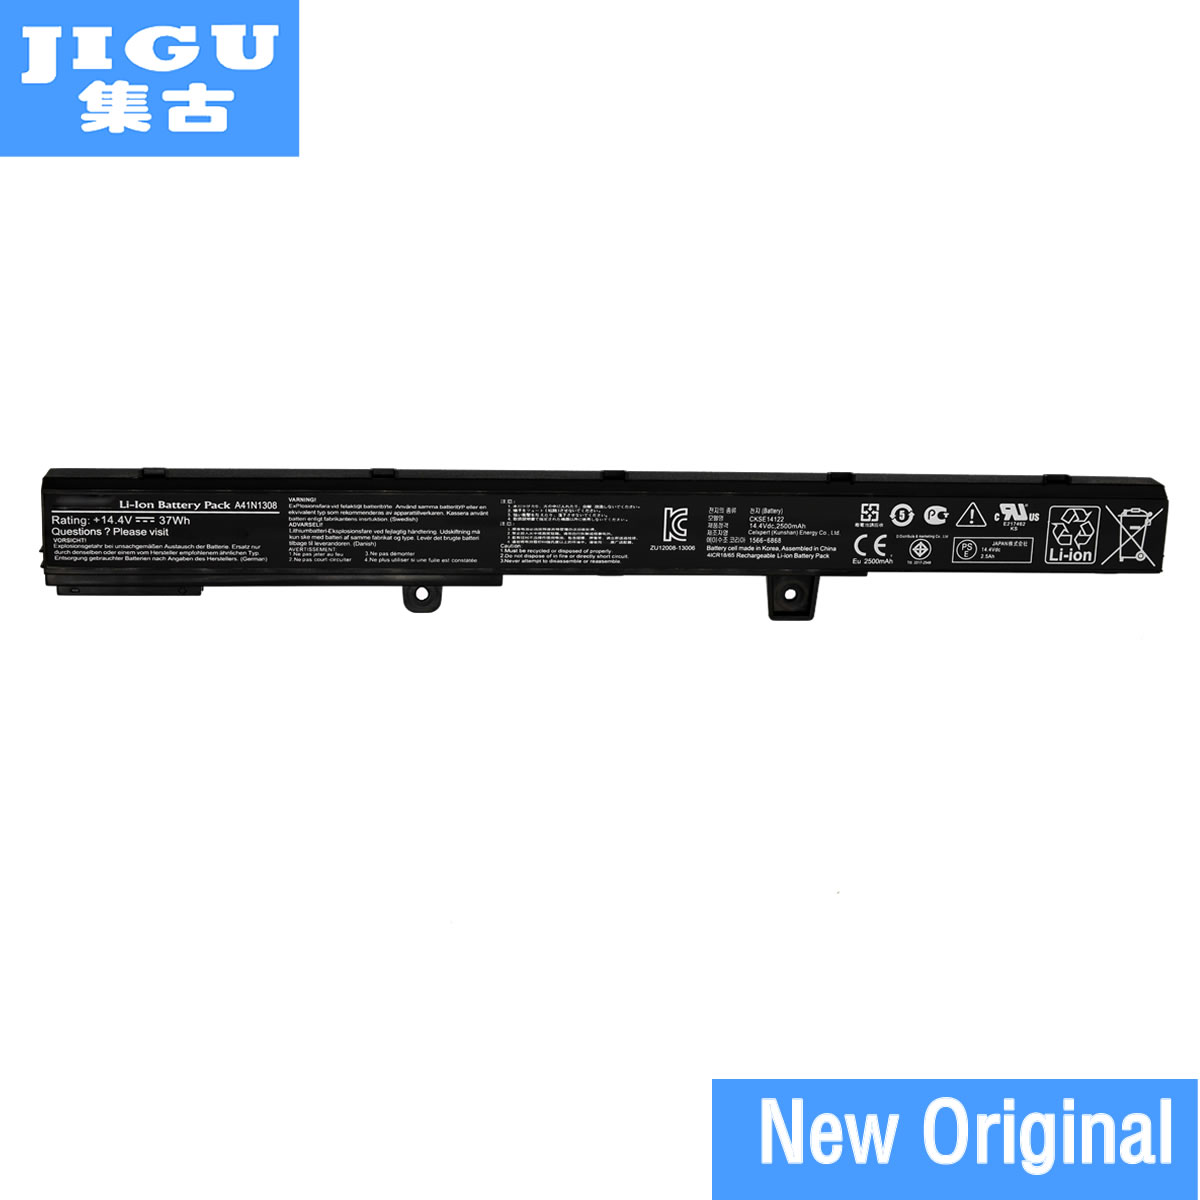 JIGU A31N1319 A41N1308 Original laptop Battery For Asus X451 X451C X451CA X551 X551C X551CA D550M D550MA